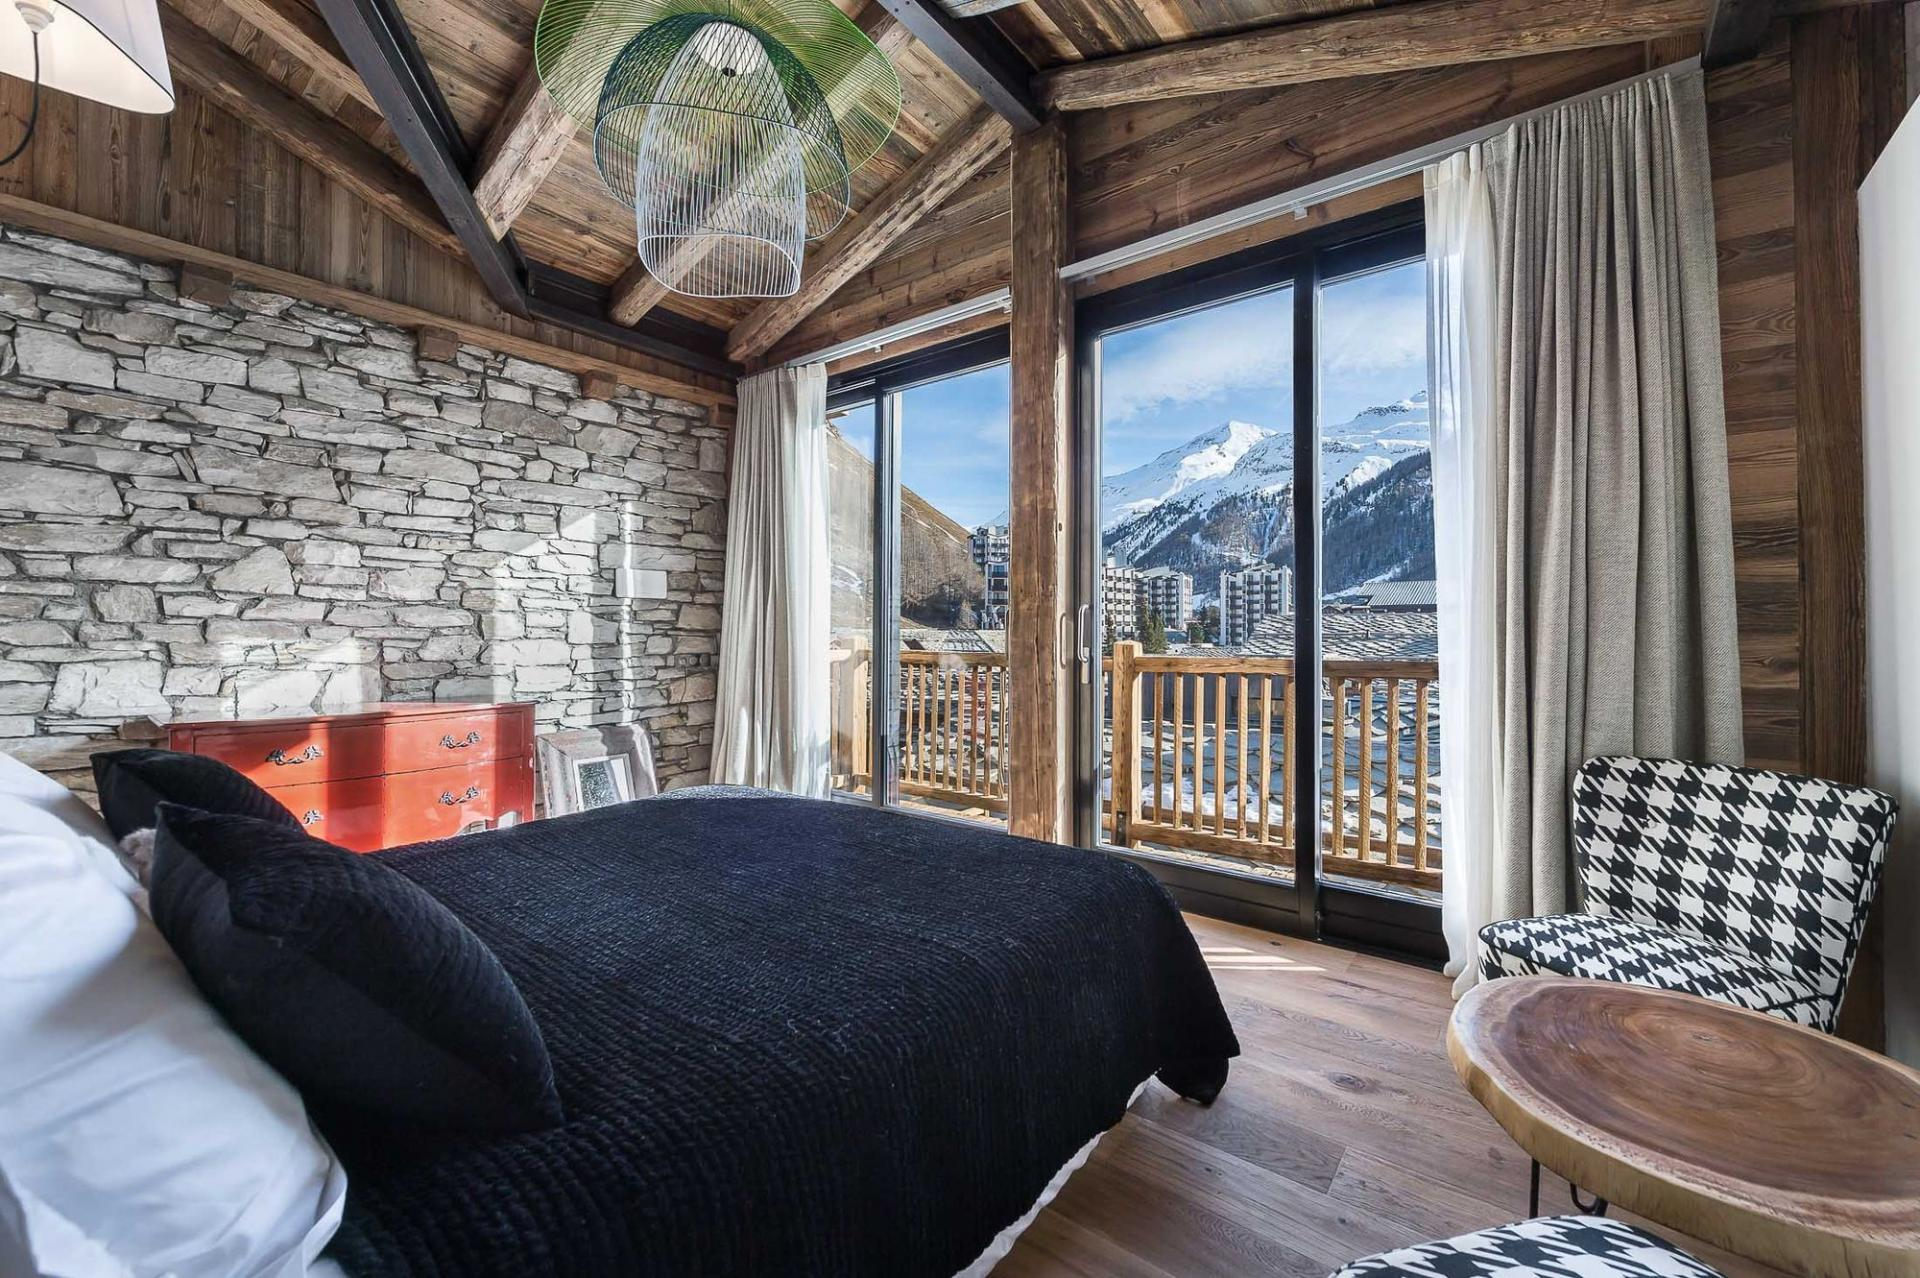 AMAZING VIEWS FOR THIS BEDROOM IN THE PENTHOUSE APARTMENT IN THE FRENCH ALPS